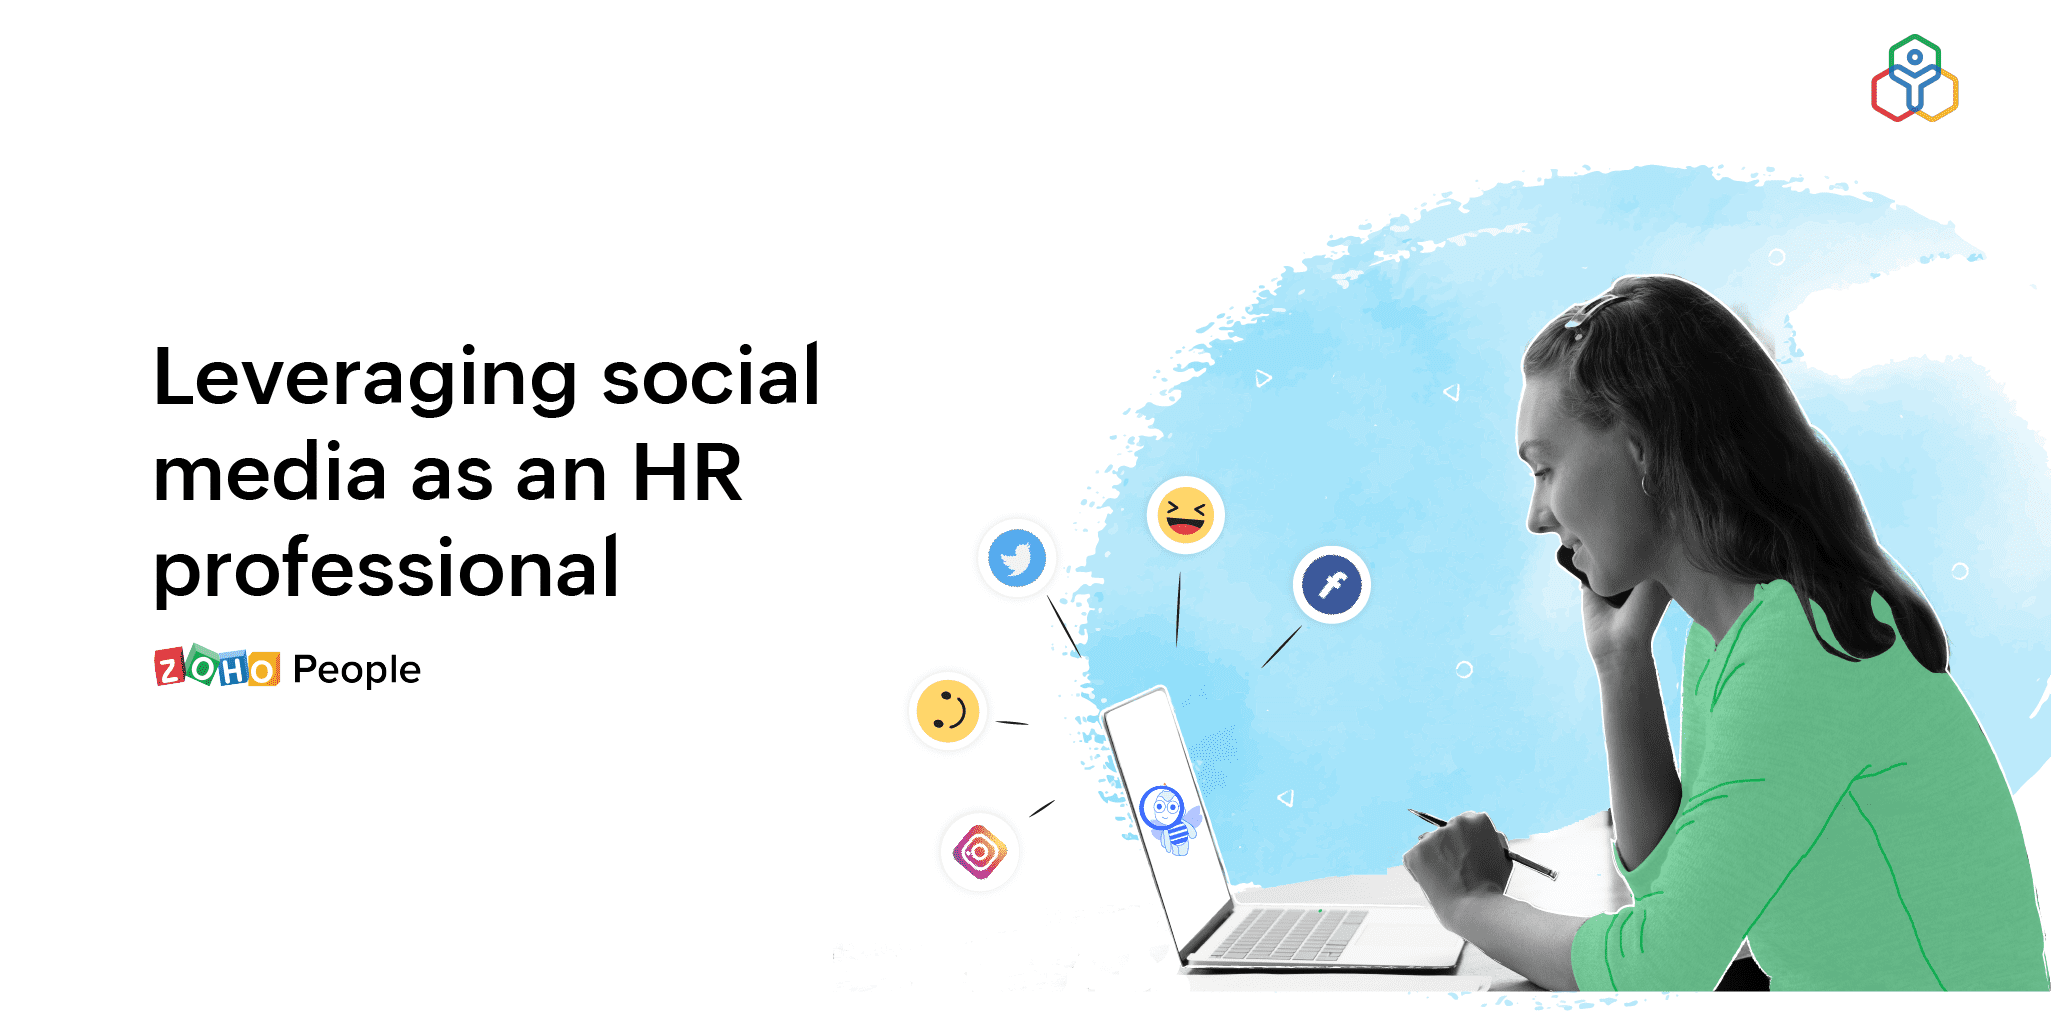 How HR professionals can leverage social media